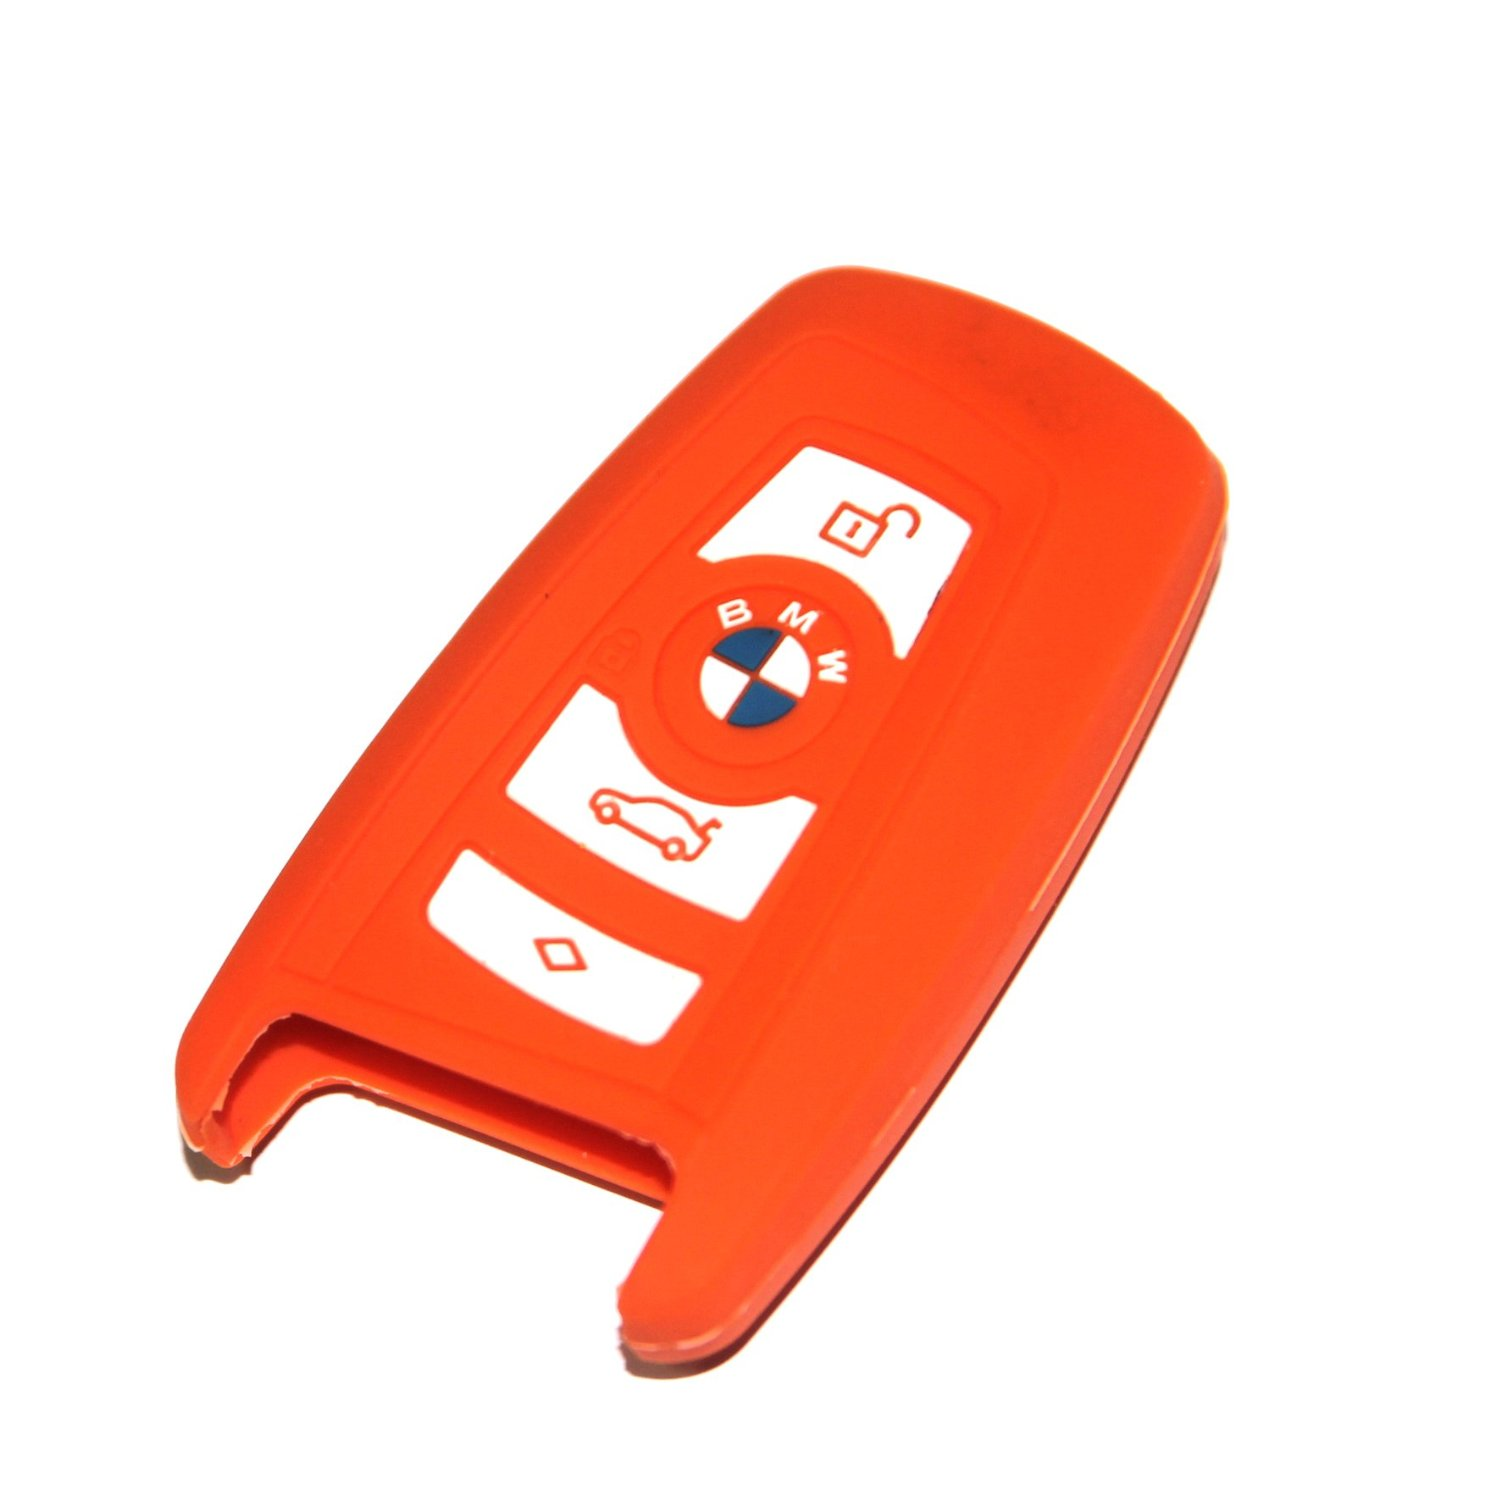 BMW Key Cover Orange Silicone Keyless Remote Control Protecting Case Smart Key Holder Fob for BMW 1 3 5 6 7 Series (Single Pack)